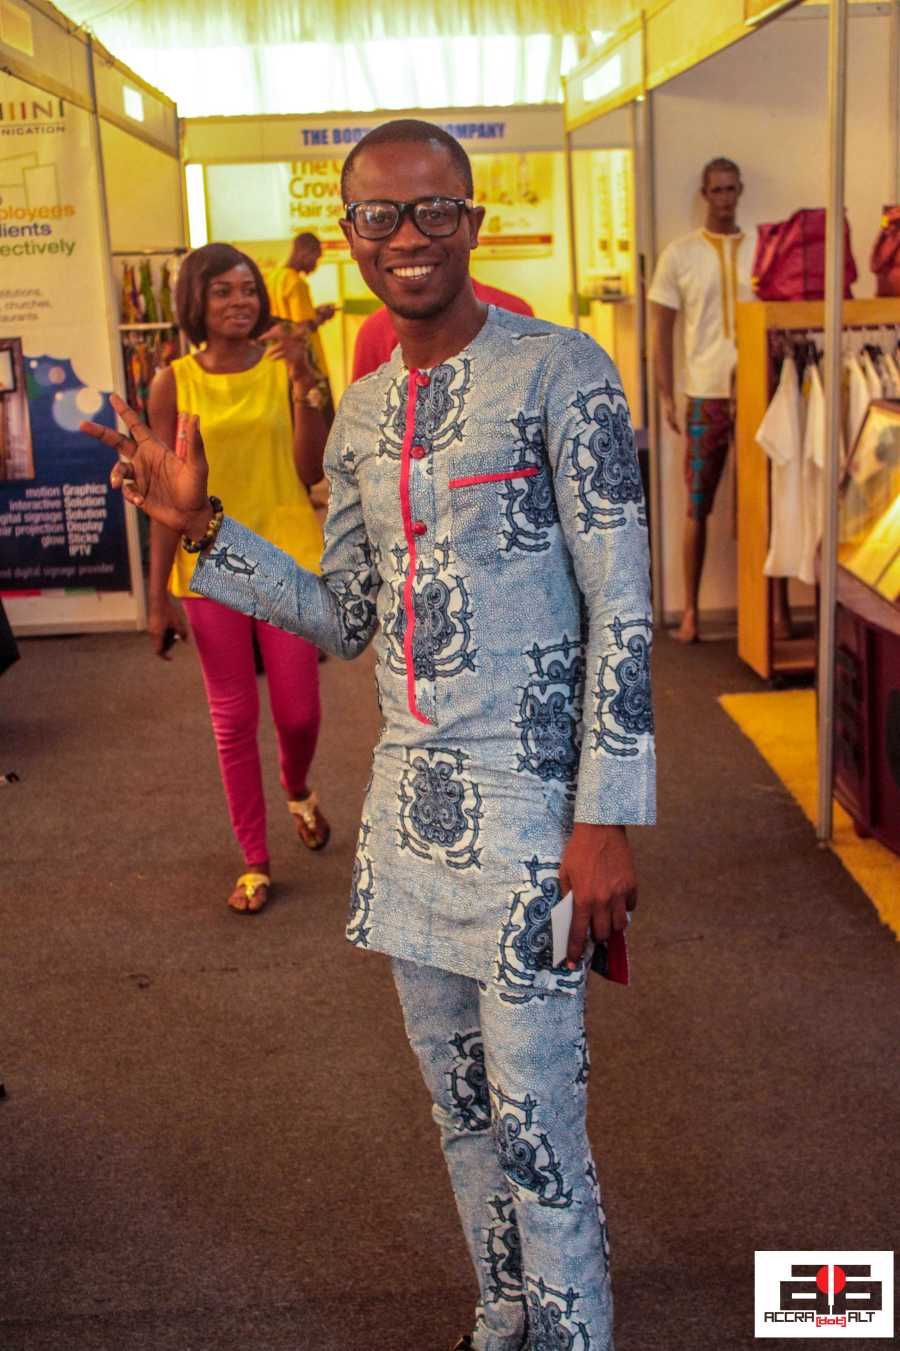 Customized outfits are big in Ghana.